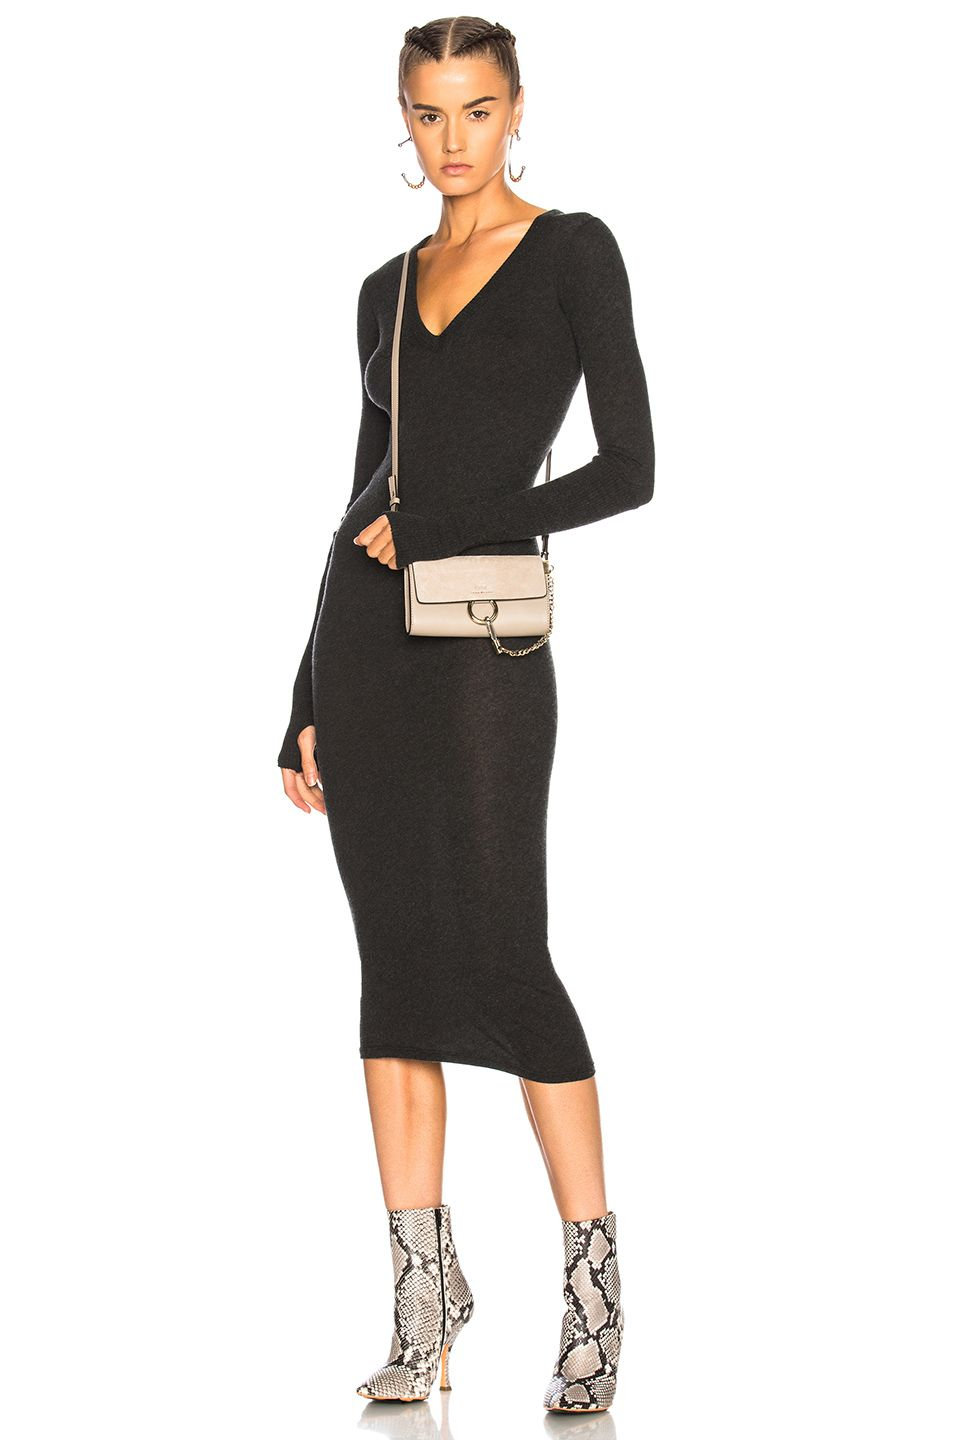 c6f3fa14754b33 Image 1 of Enza Costa Cashmere V Neck Dress in Charcoal